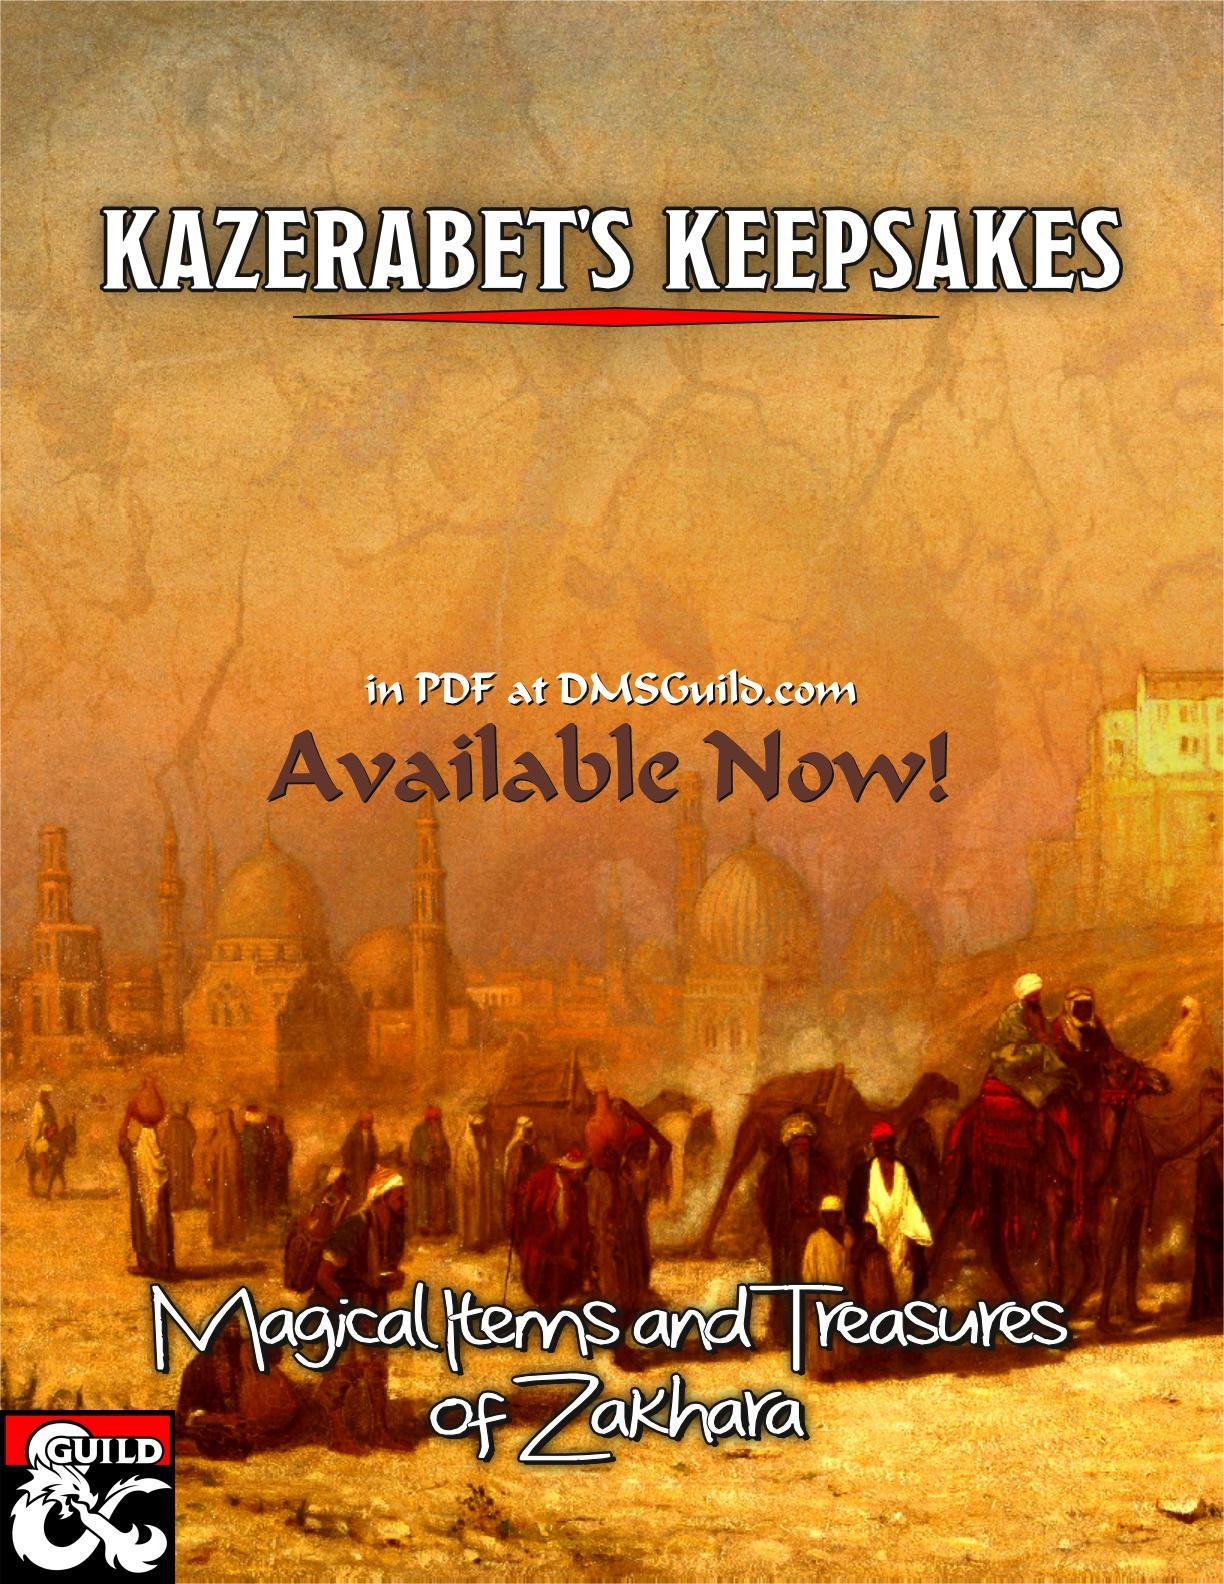 Ad Page Kazerabet Available Now-page001.jpeg